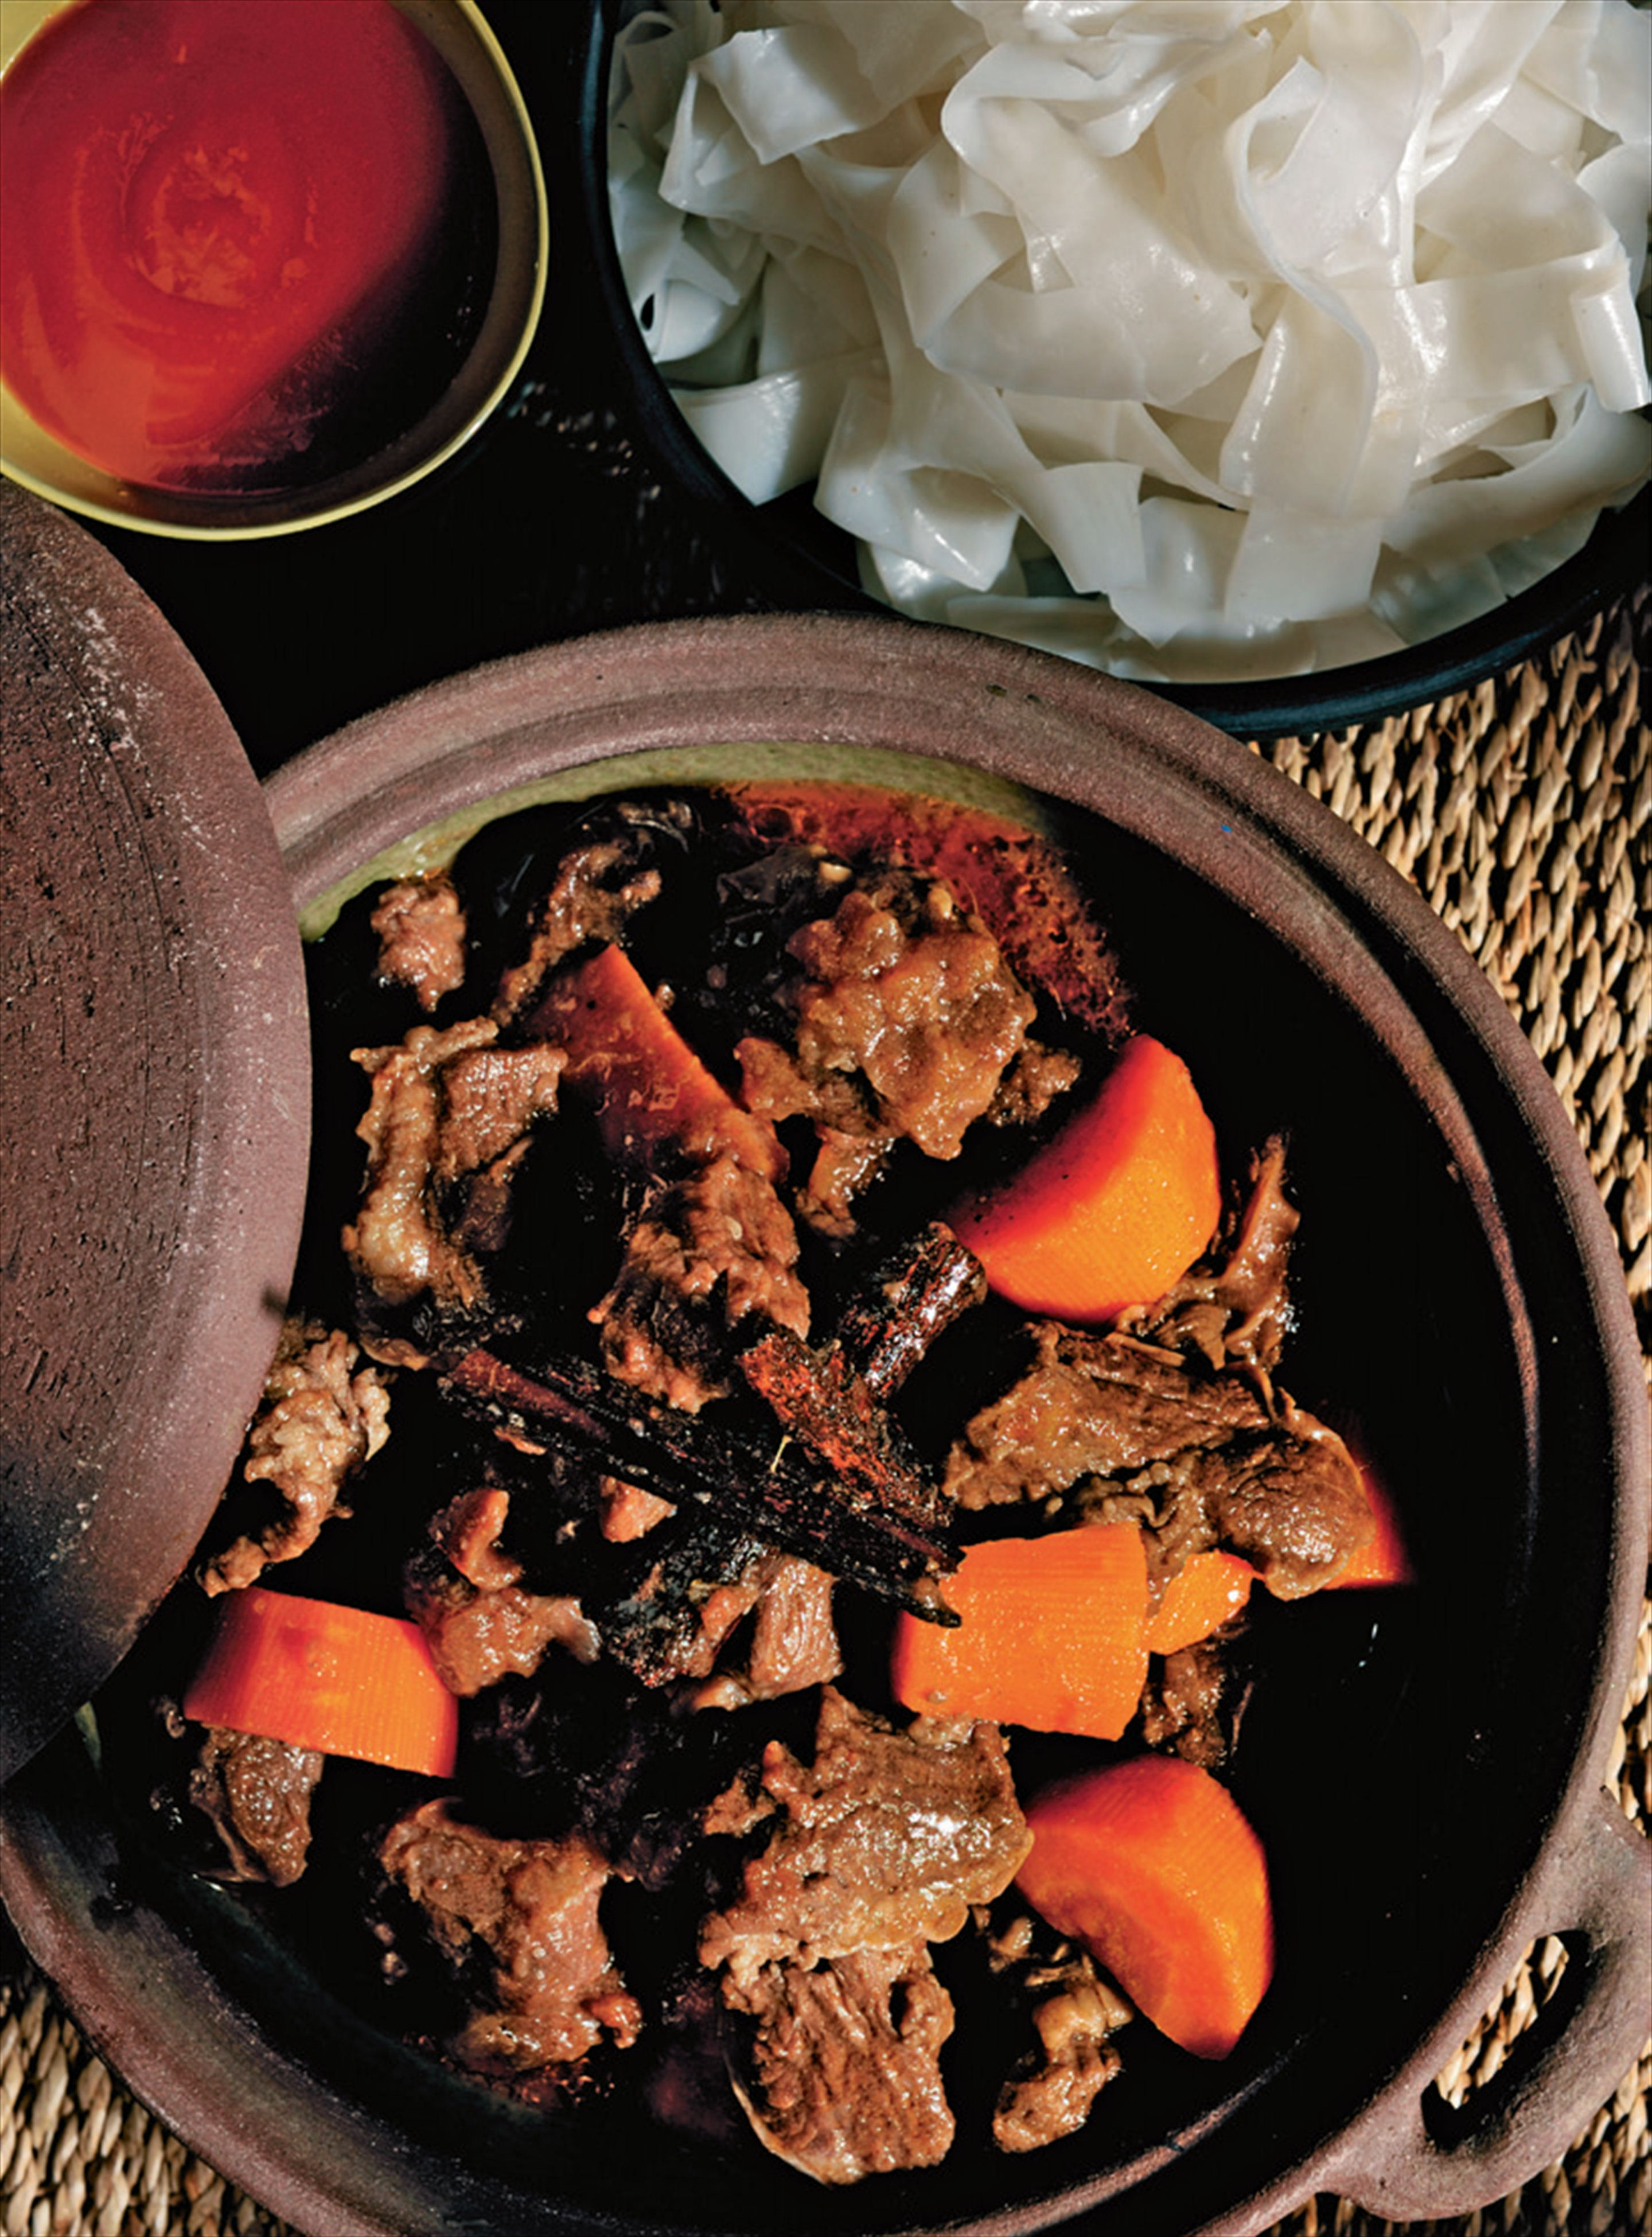 Hanoi braised beef with red wine